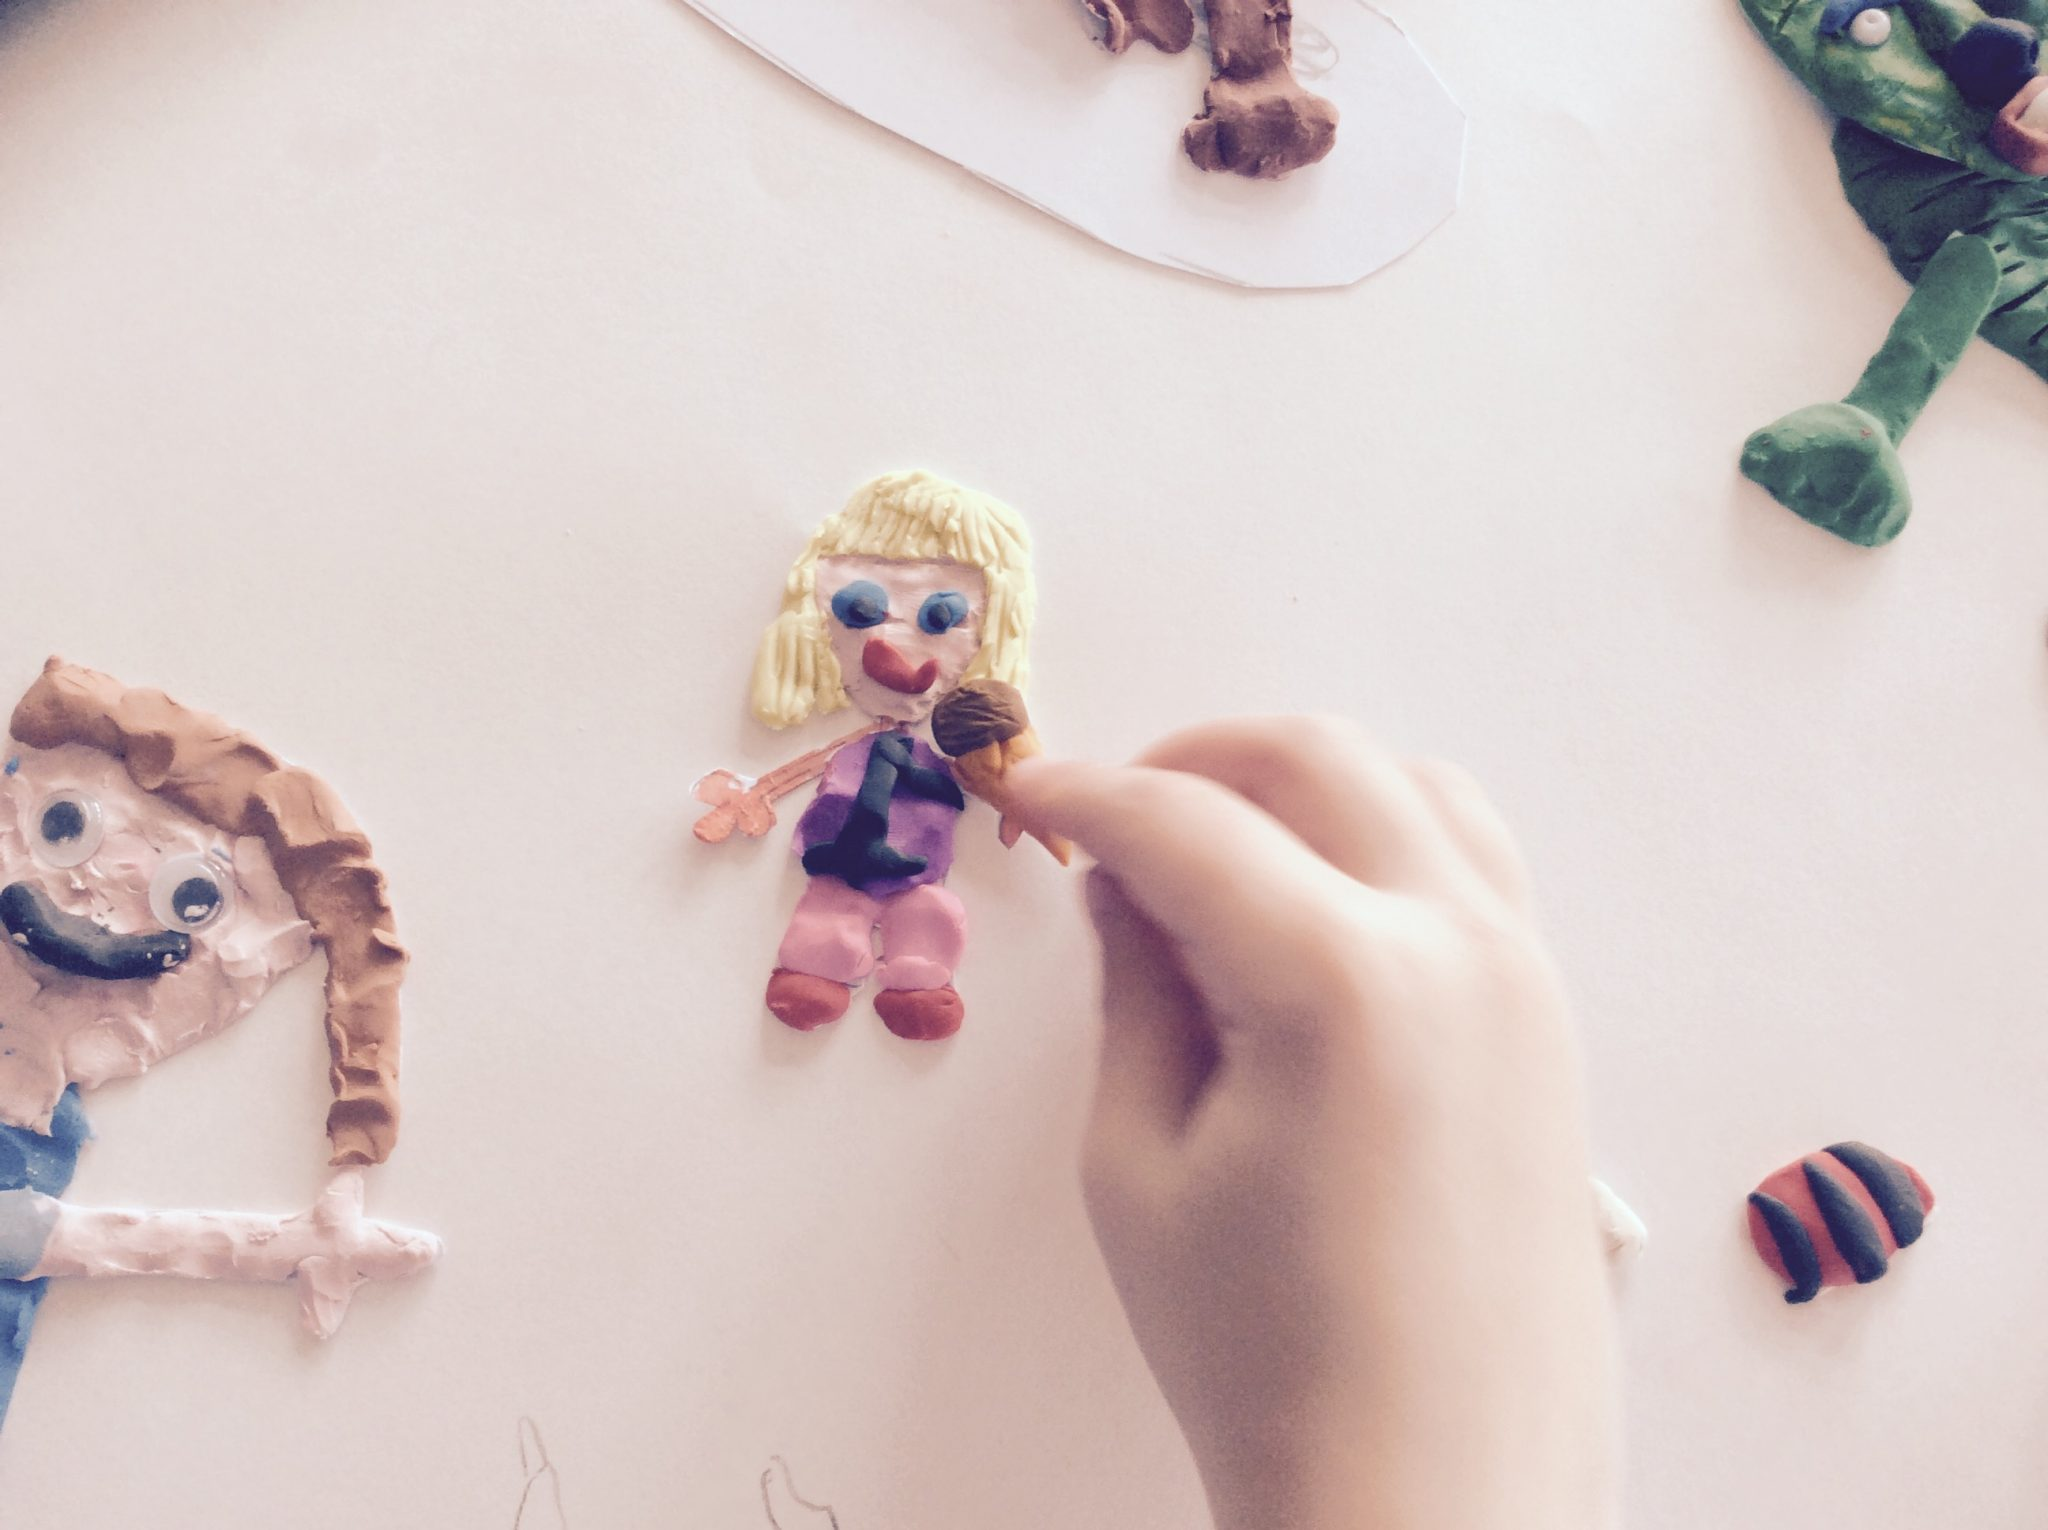 Image of Plasticine character for use in animation